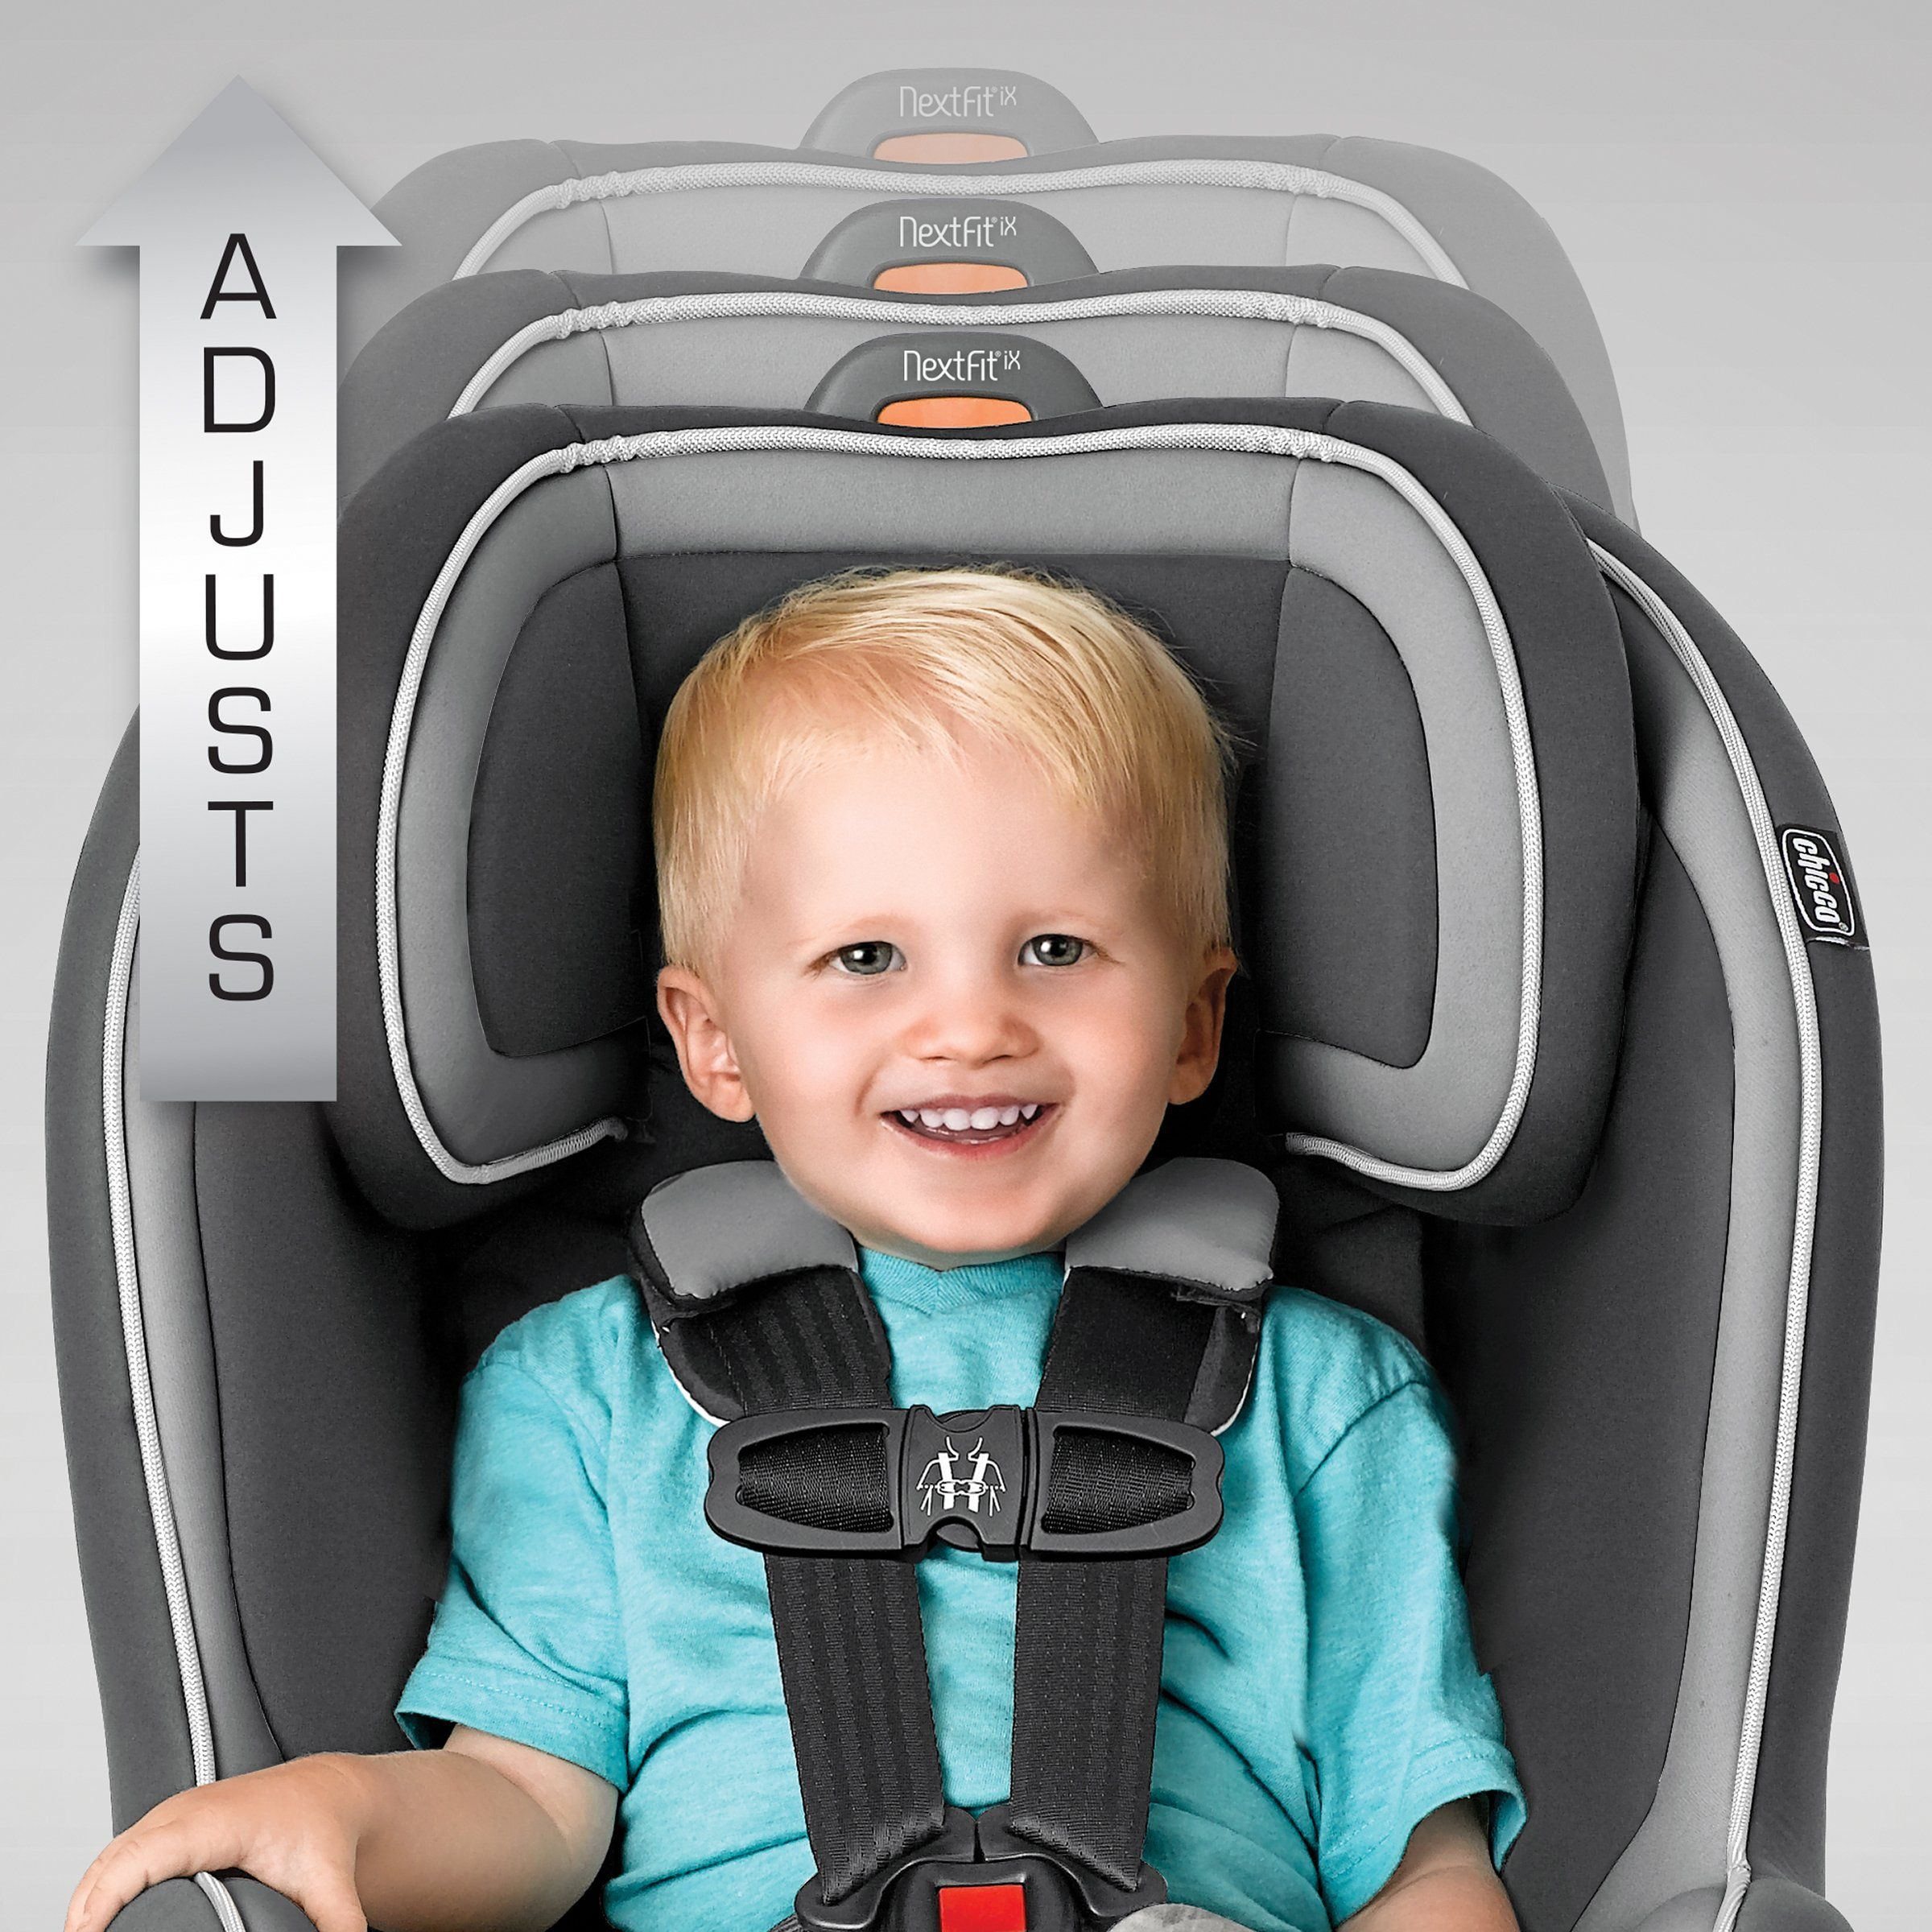 Car Seat Travel Bag For Chicco Nextfit